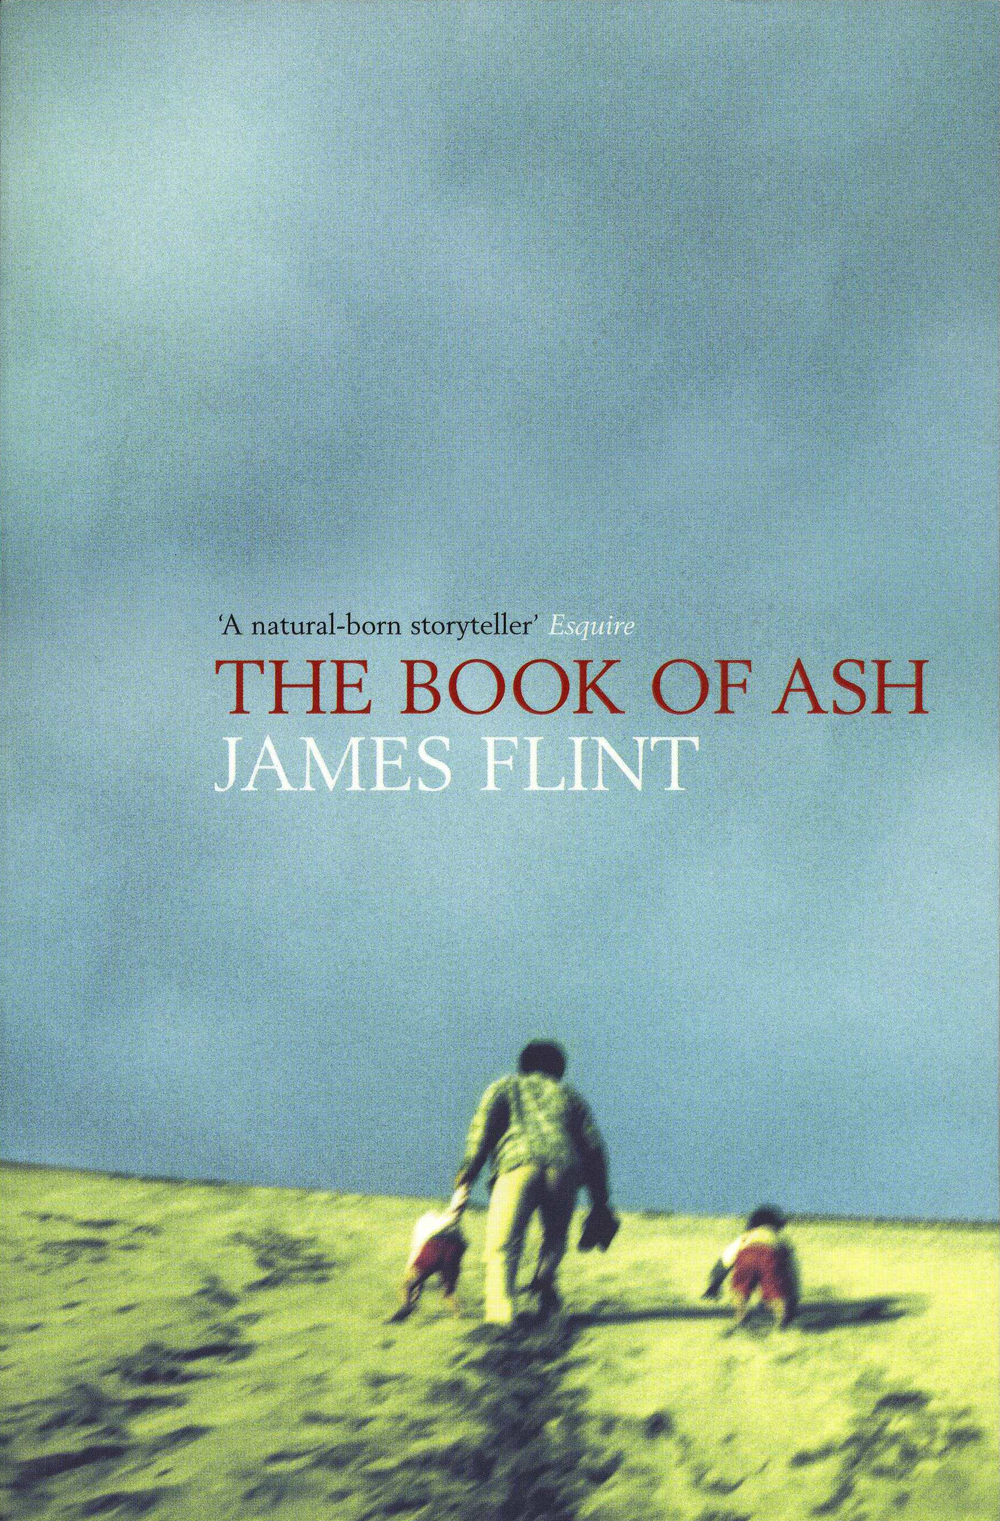 The Book of Ash